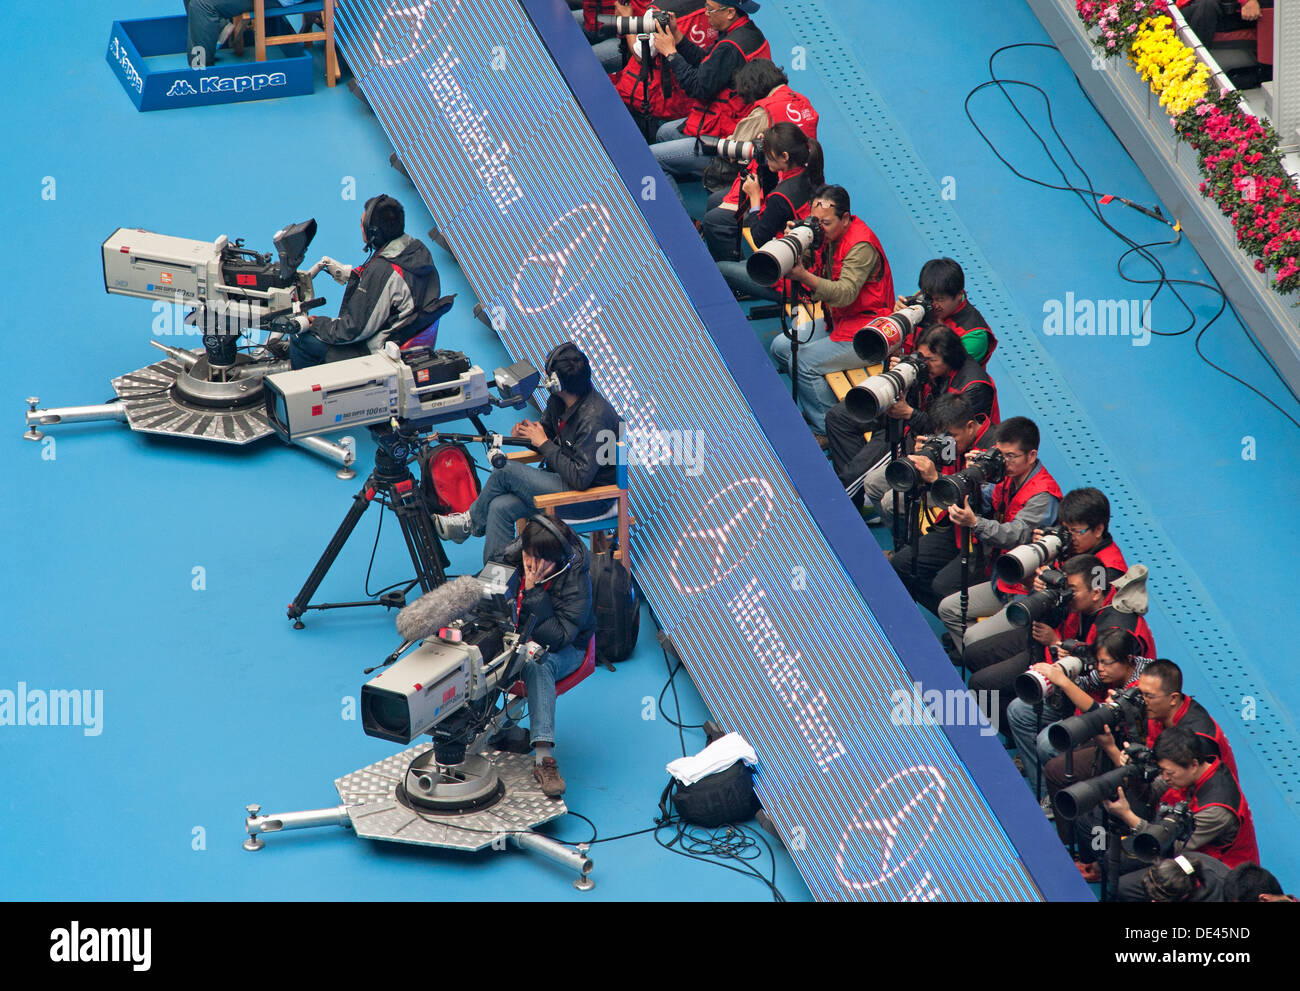 Photographers and cameramen at a match between A. Ivanovic and A. Radwańska at the China Tennis Open on 7/10/2012 - Stock Image